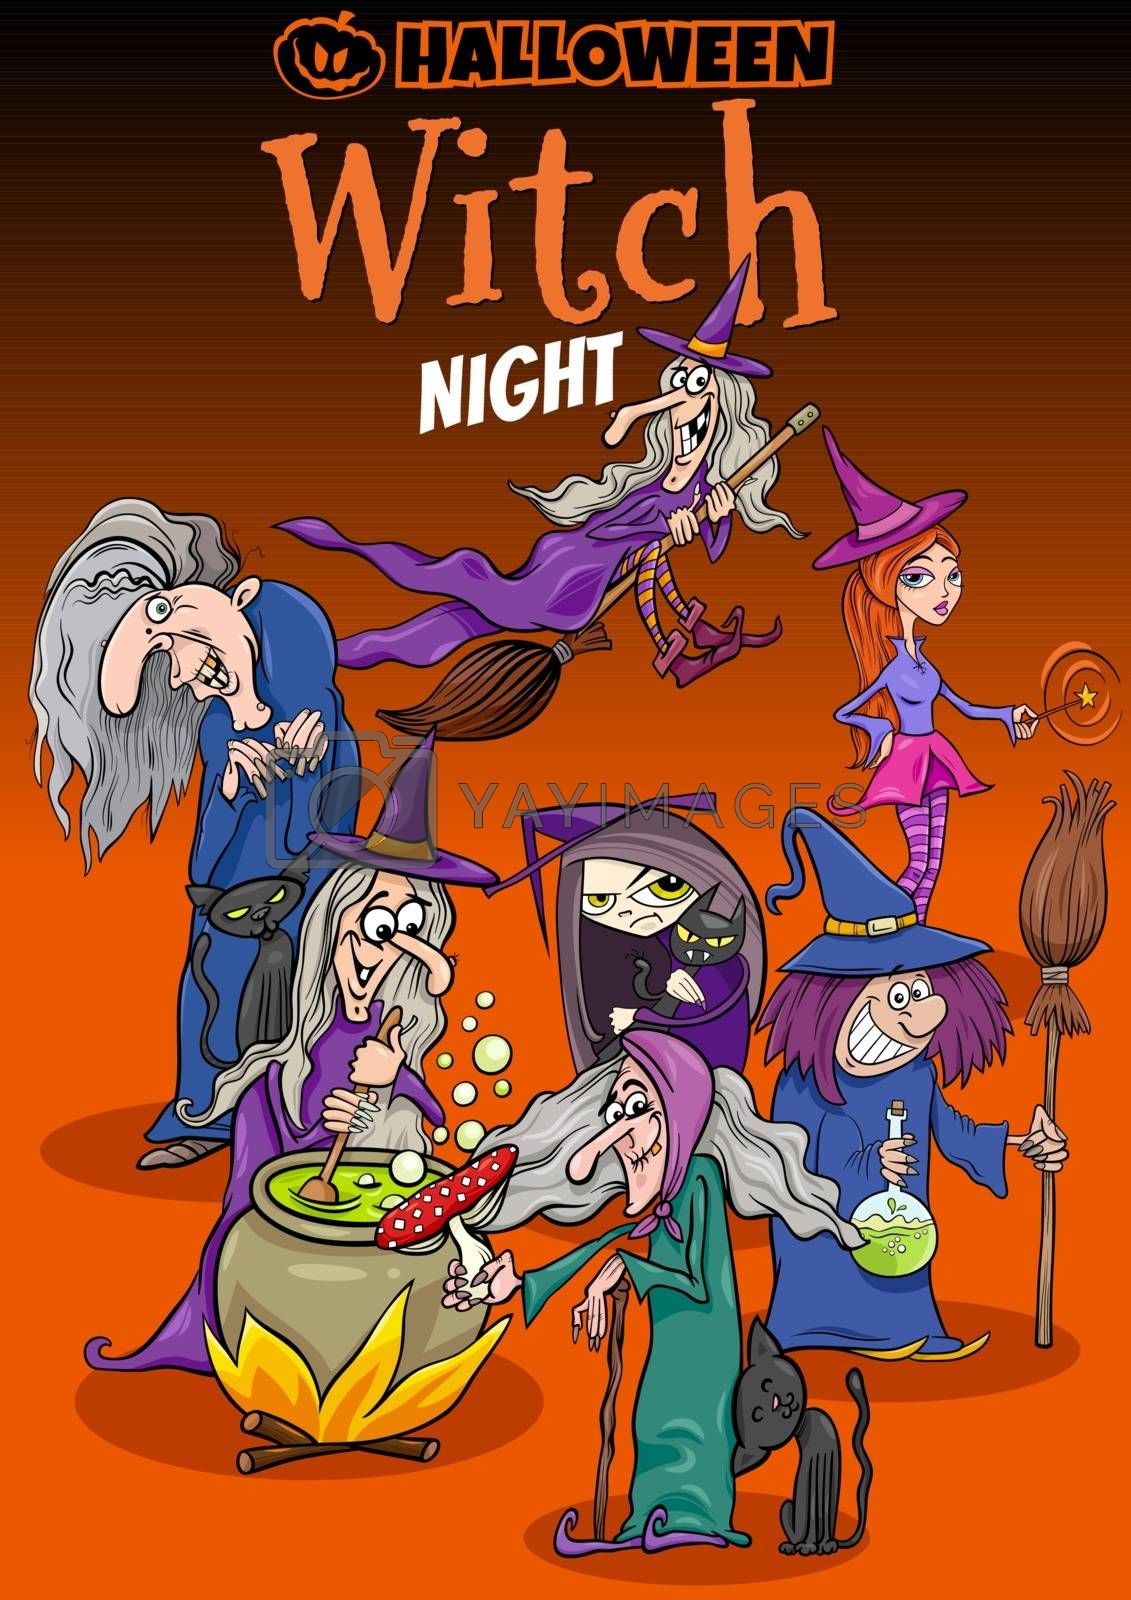 Cartoon Illustration of Halloween Holiday Witch Night Party Poster or Invitation Design